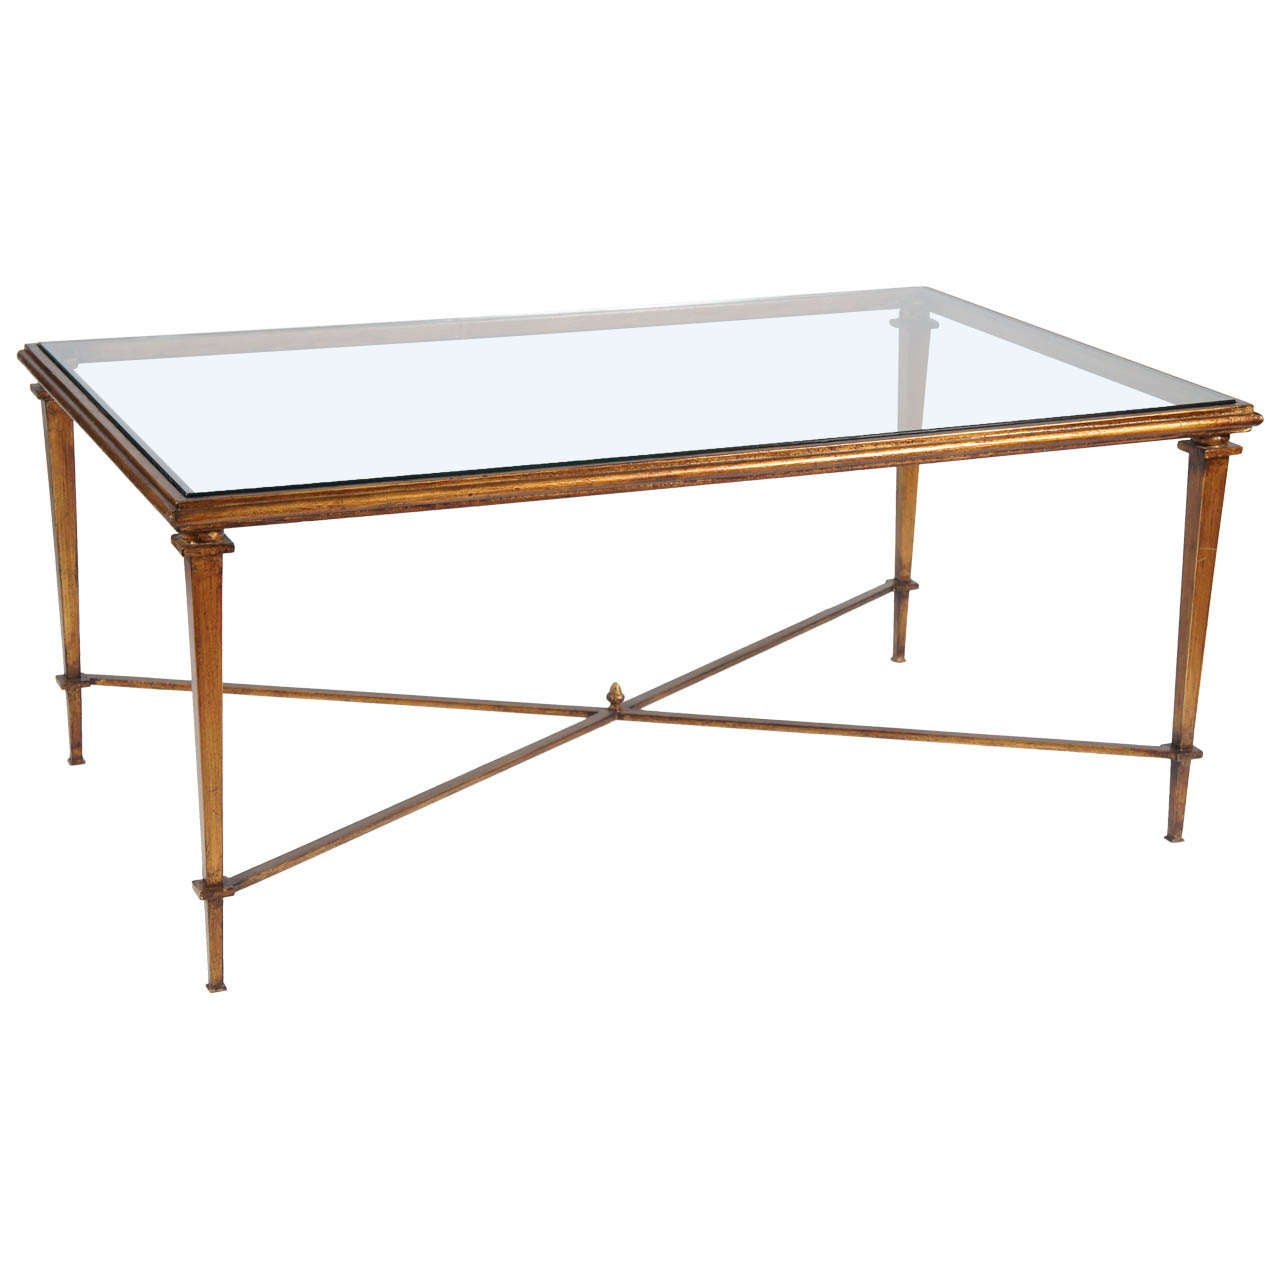 neoclassical style metal coffee table with glass top for sale at  - neoclassical style metal coffee table with glass top